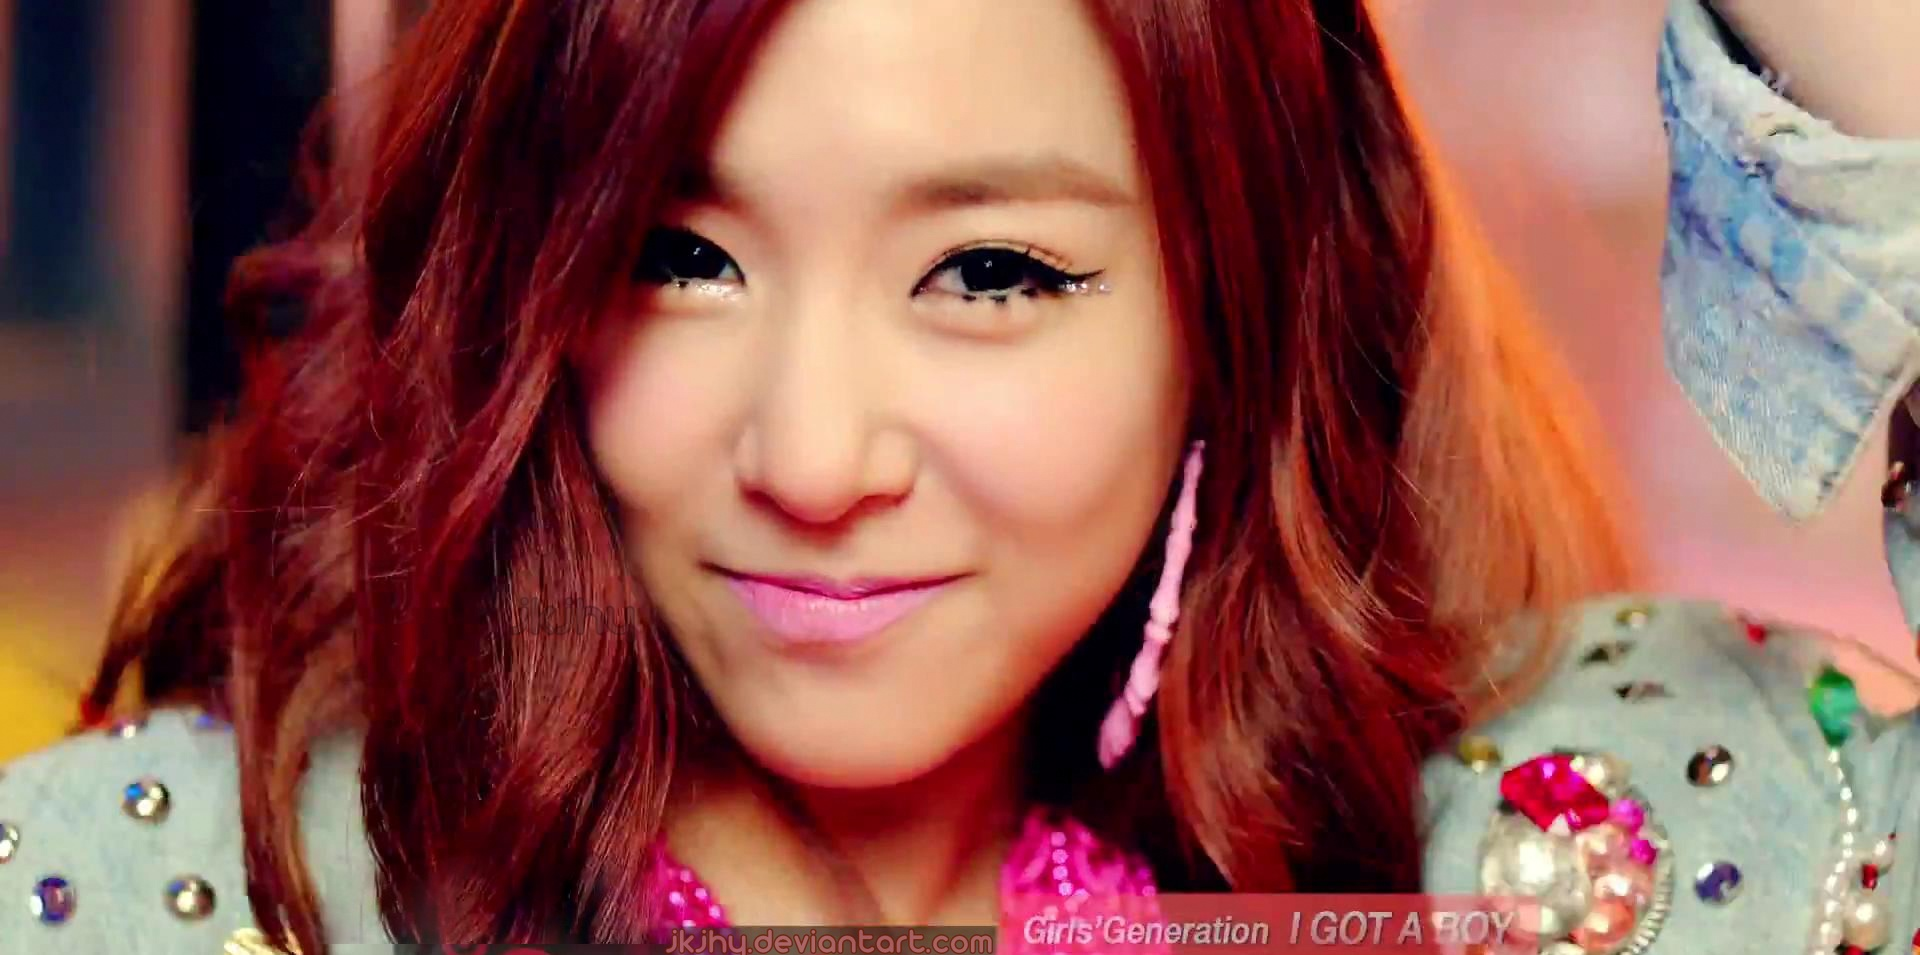 Tiffany snsd wallpaper iphone